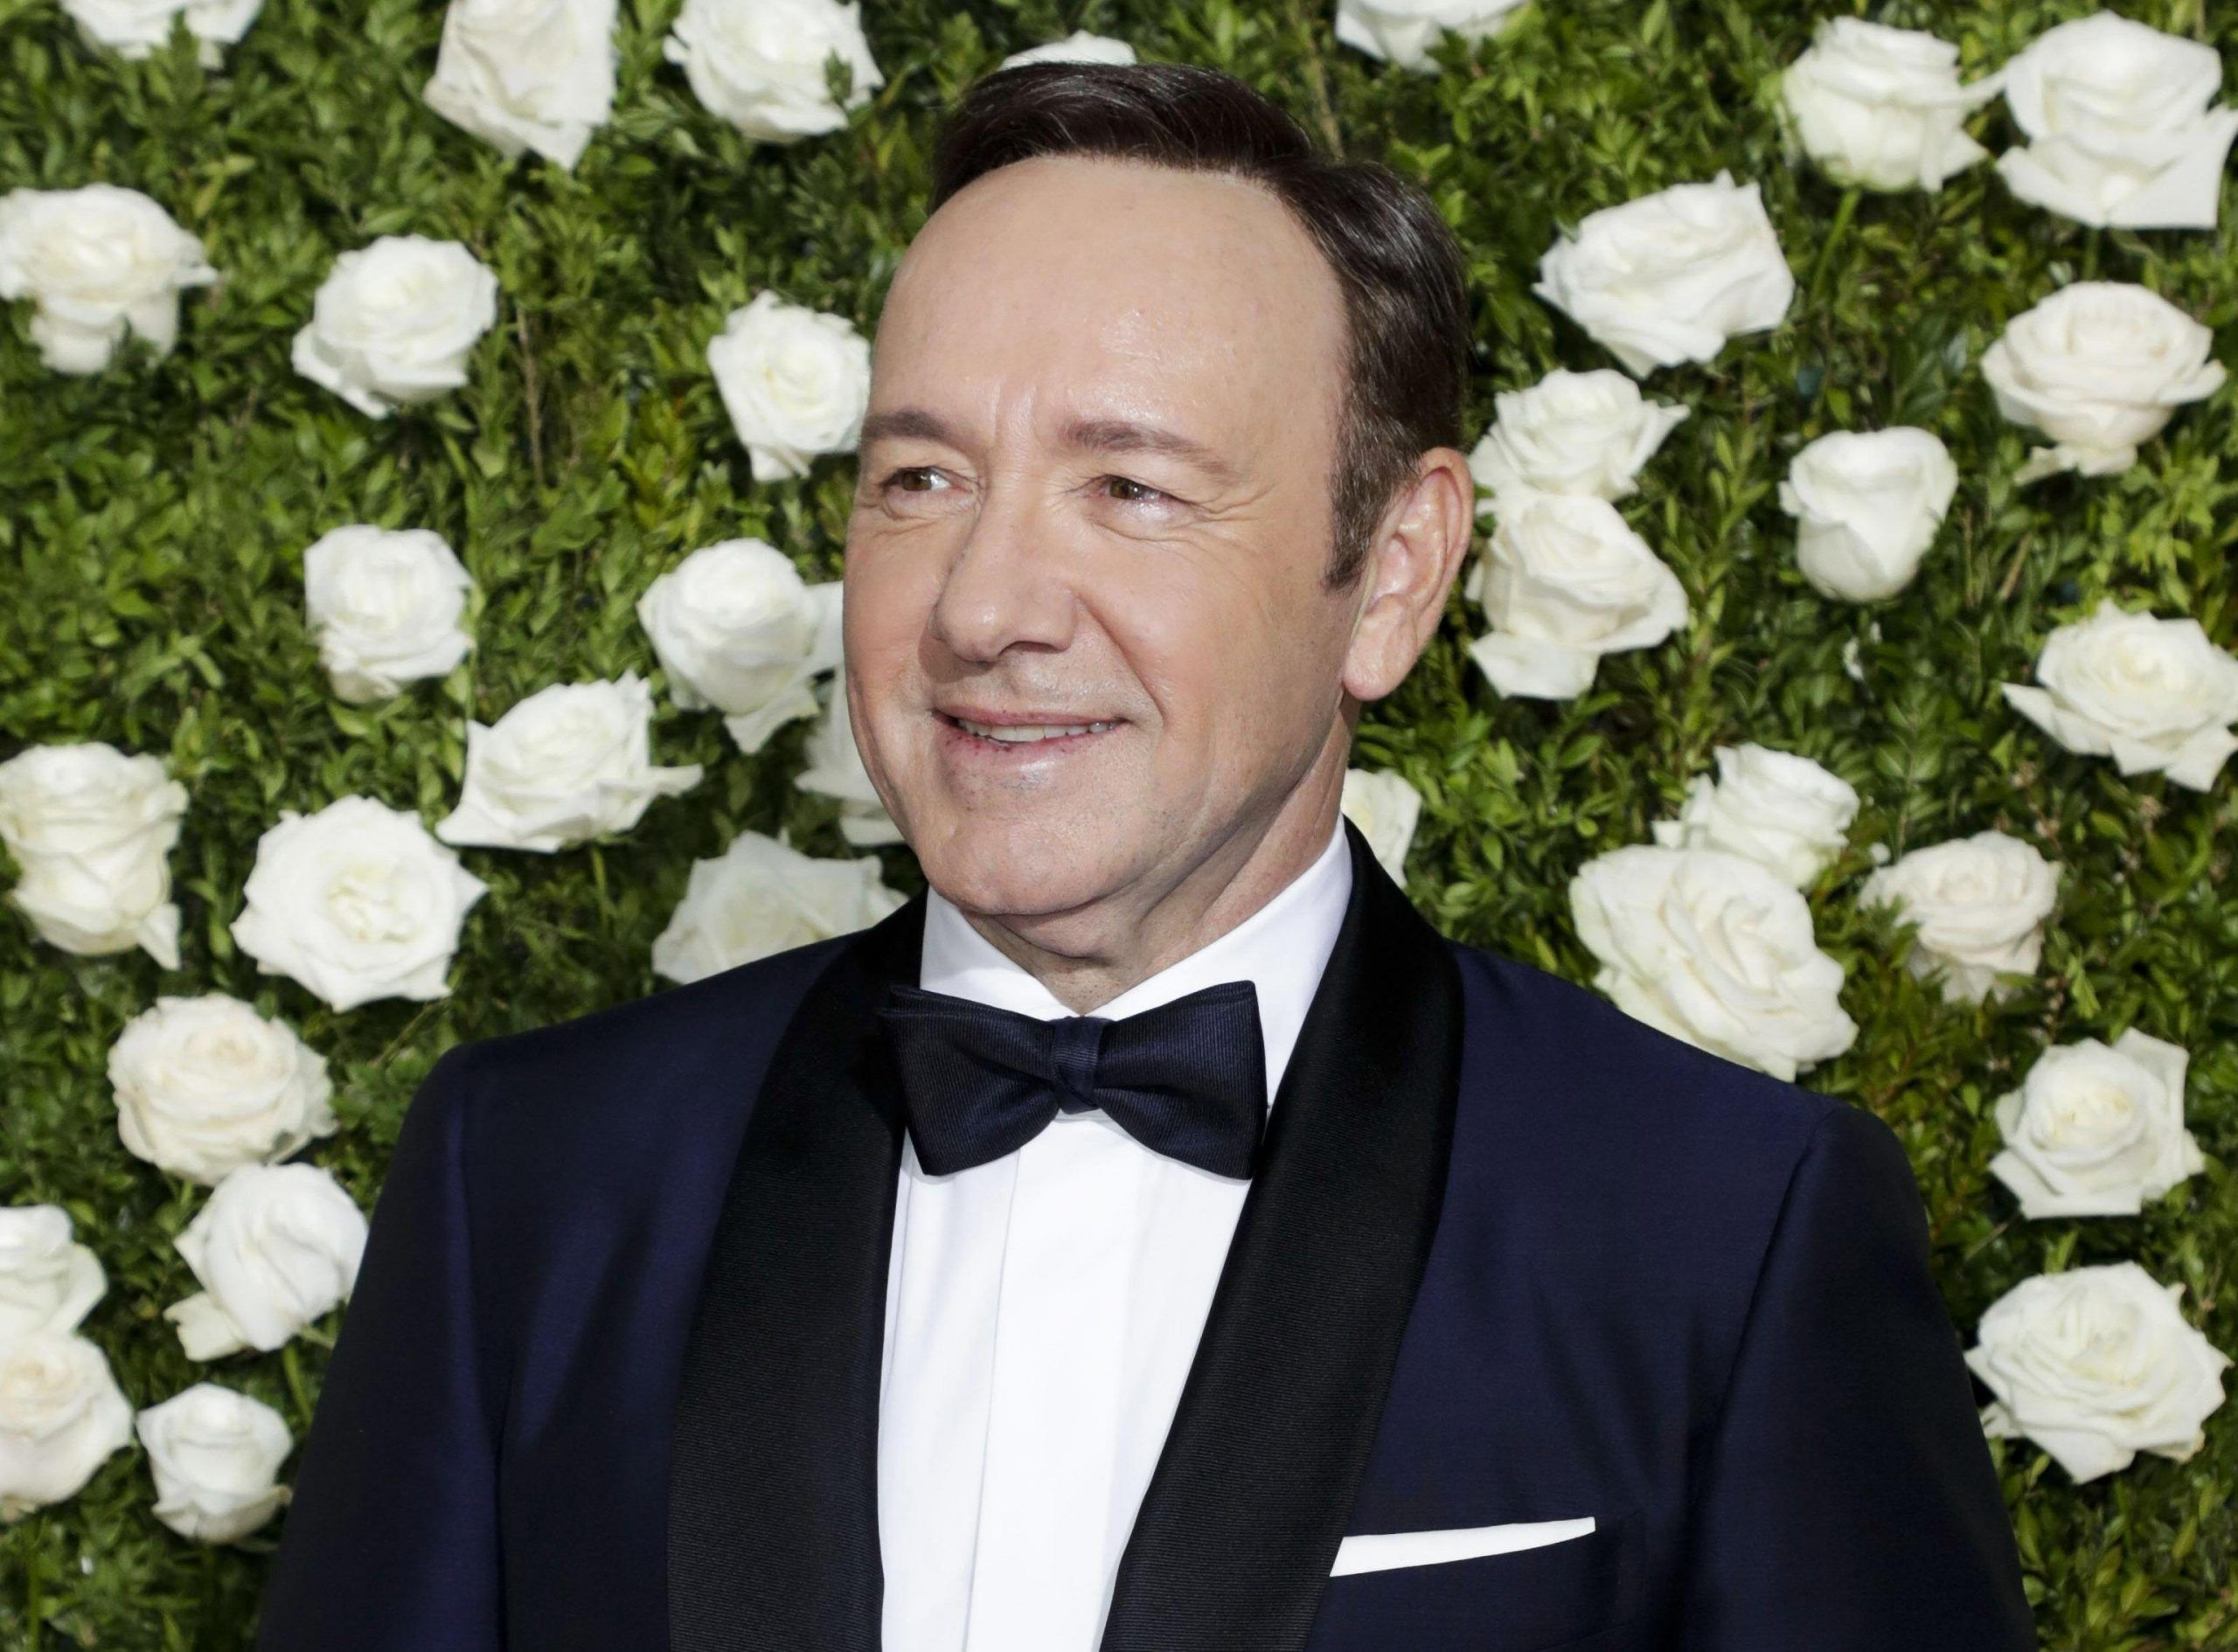 Kevin Spacey, coming out su Twitter e le scuse a Anthony Rapp per molestie